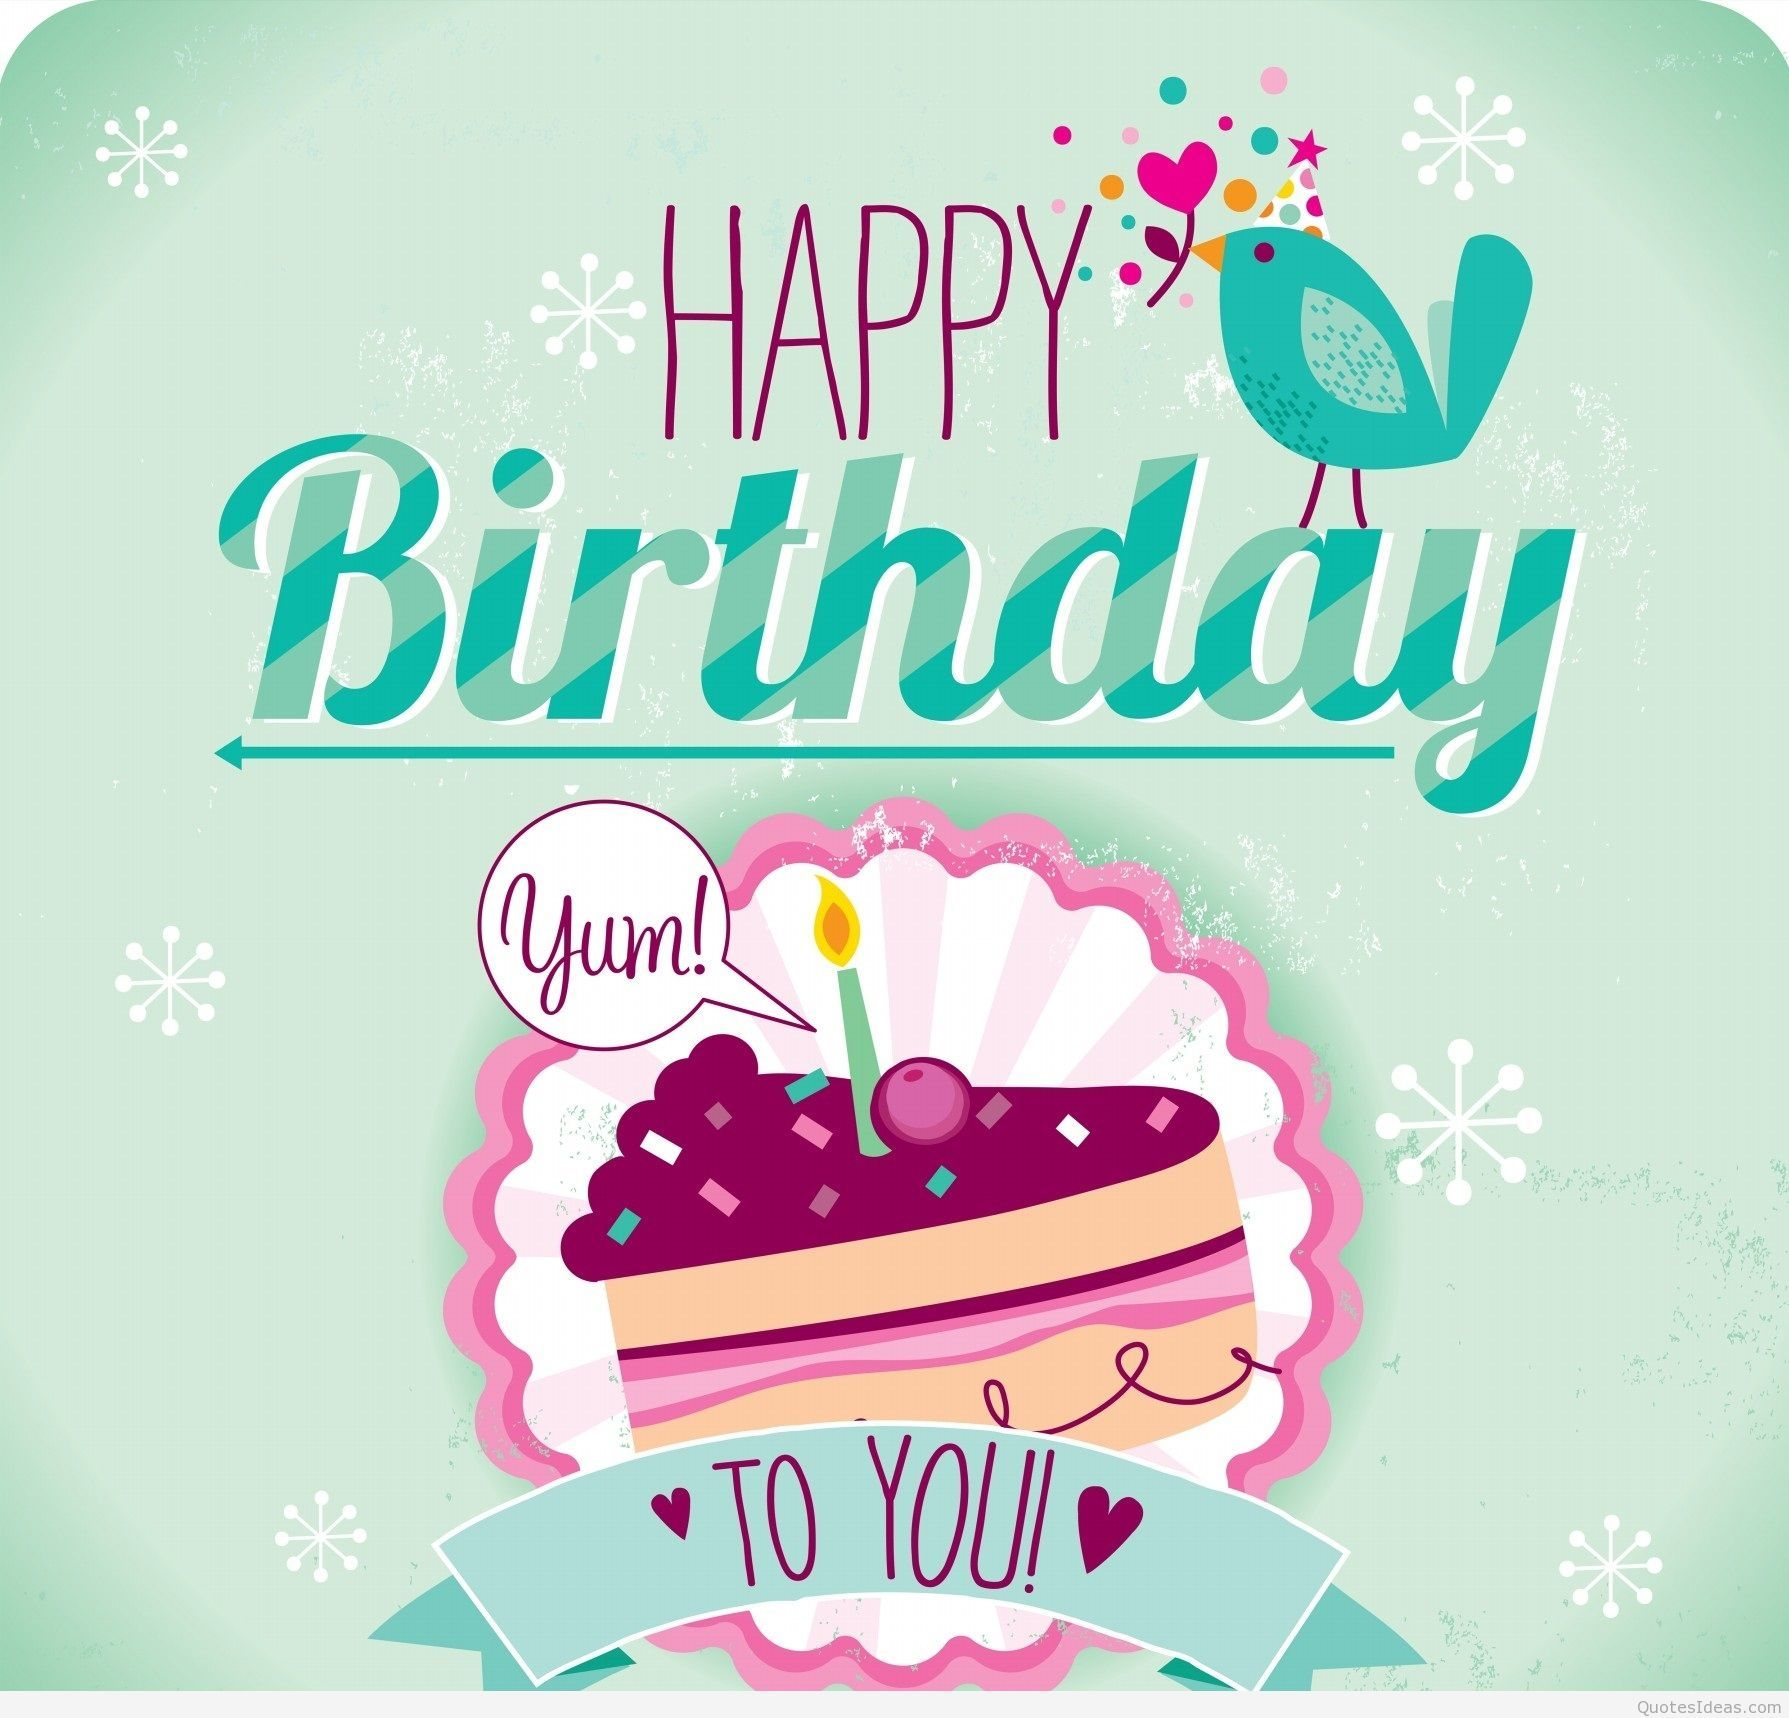 Happy Birthday Cards and Greetings with Messages